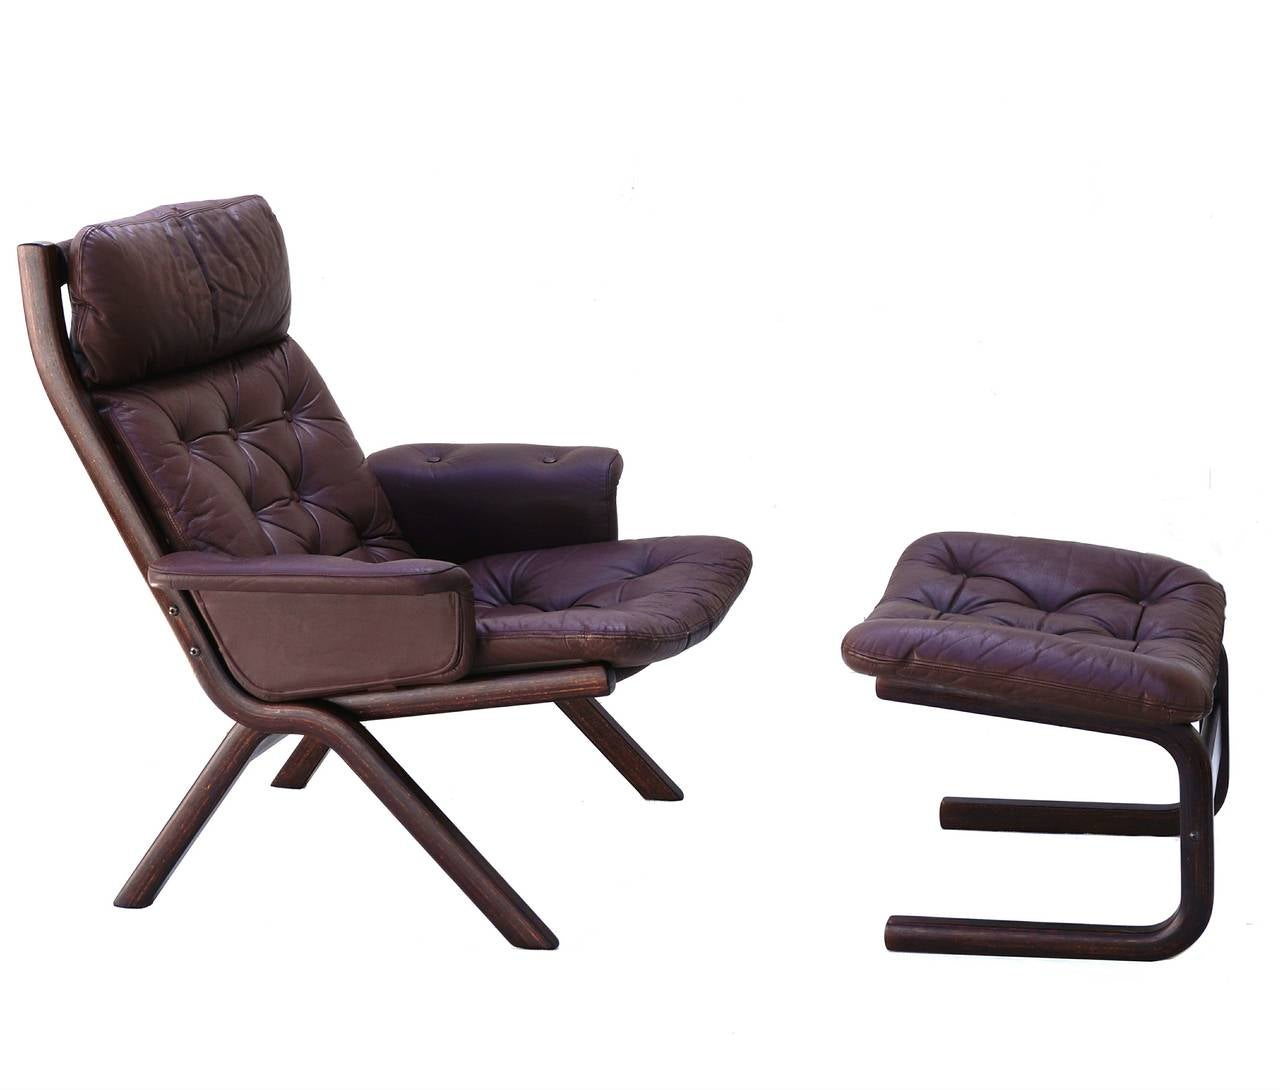 leather sling chairs mickey mouse club chair ethan allen danish modern sculptural lounge and